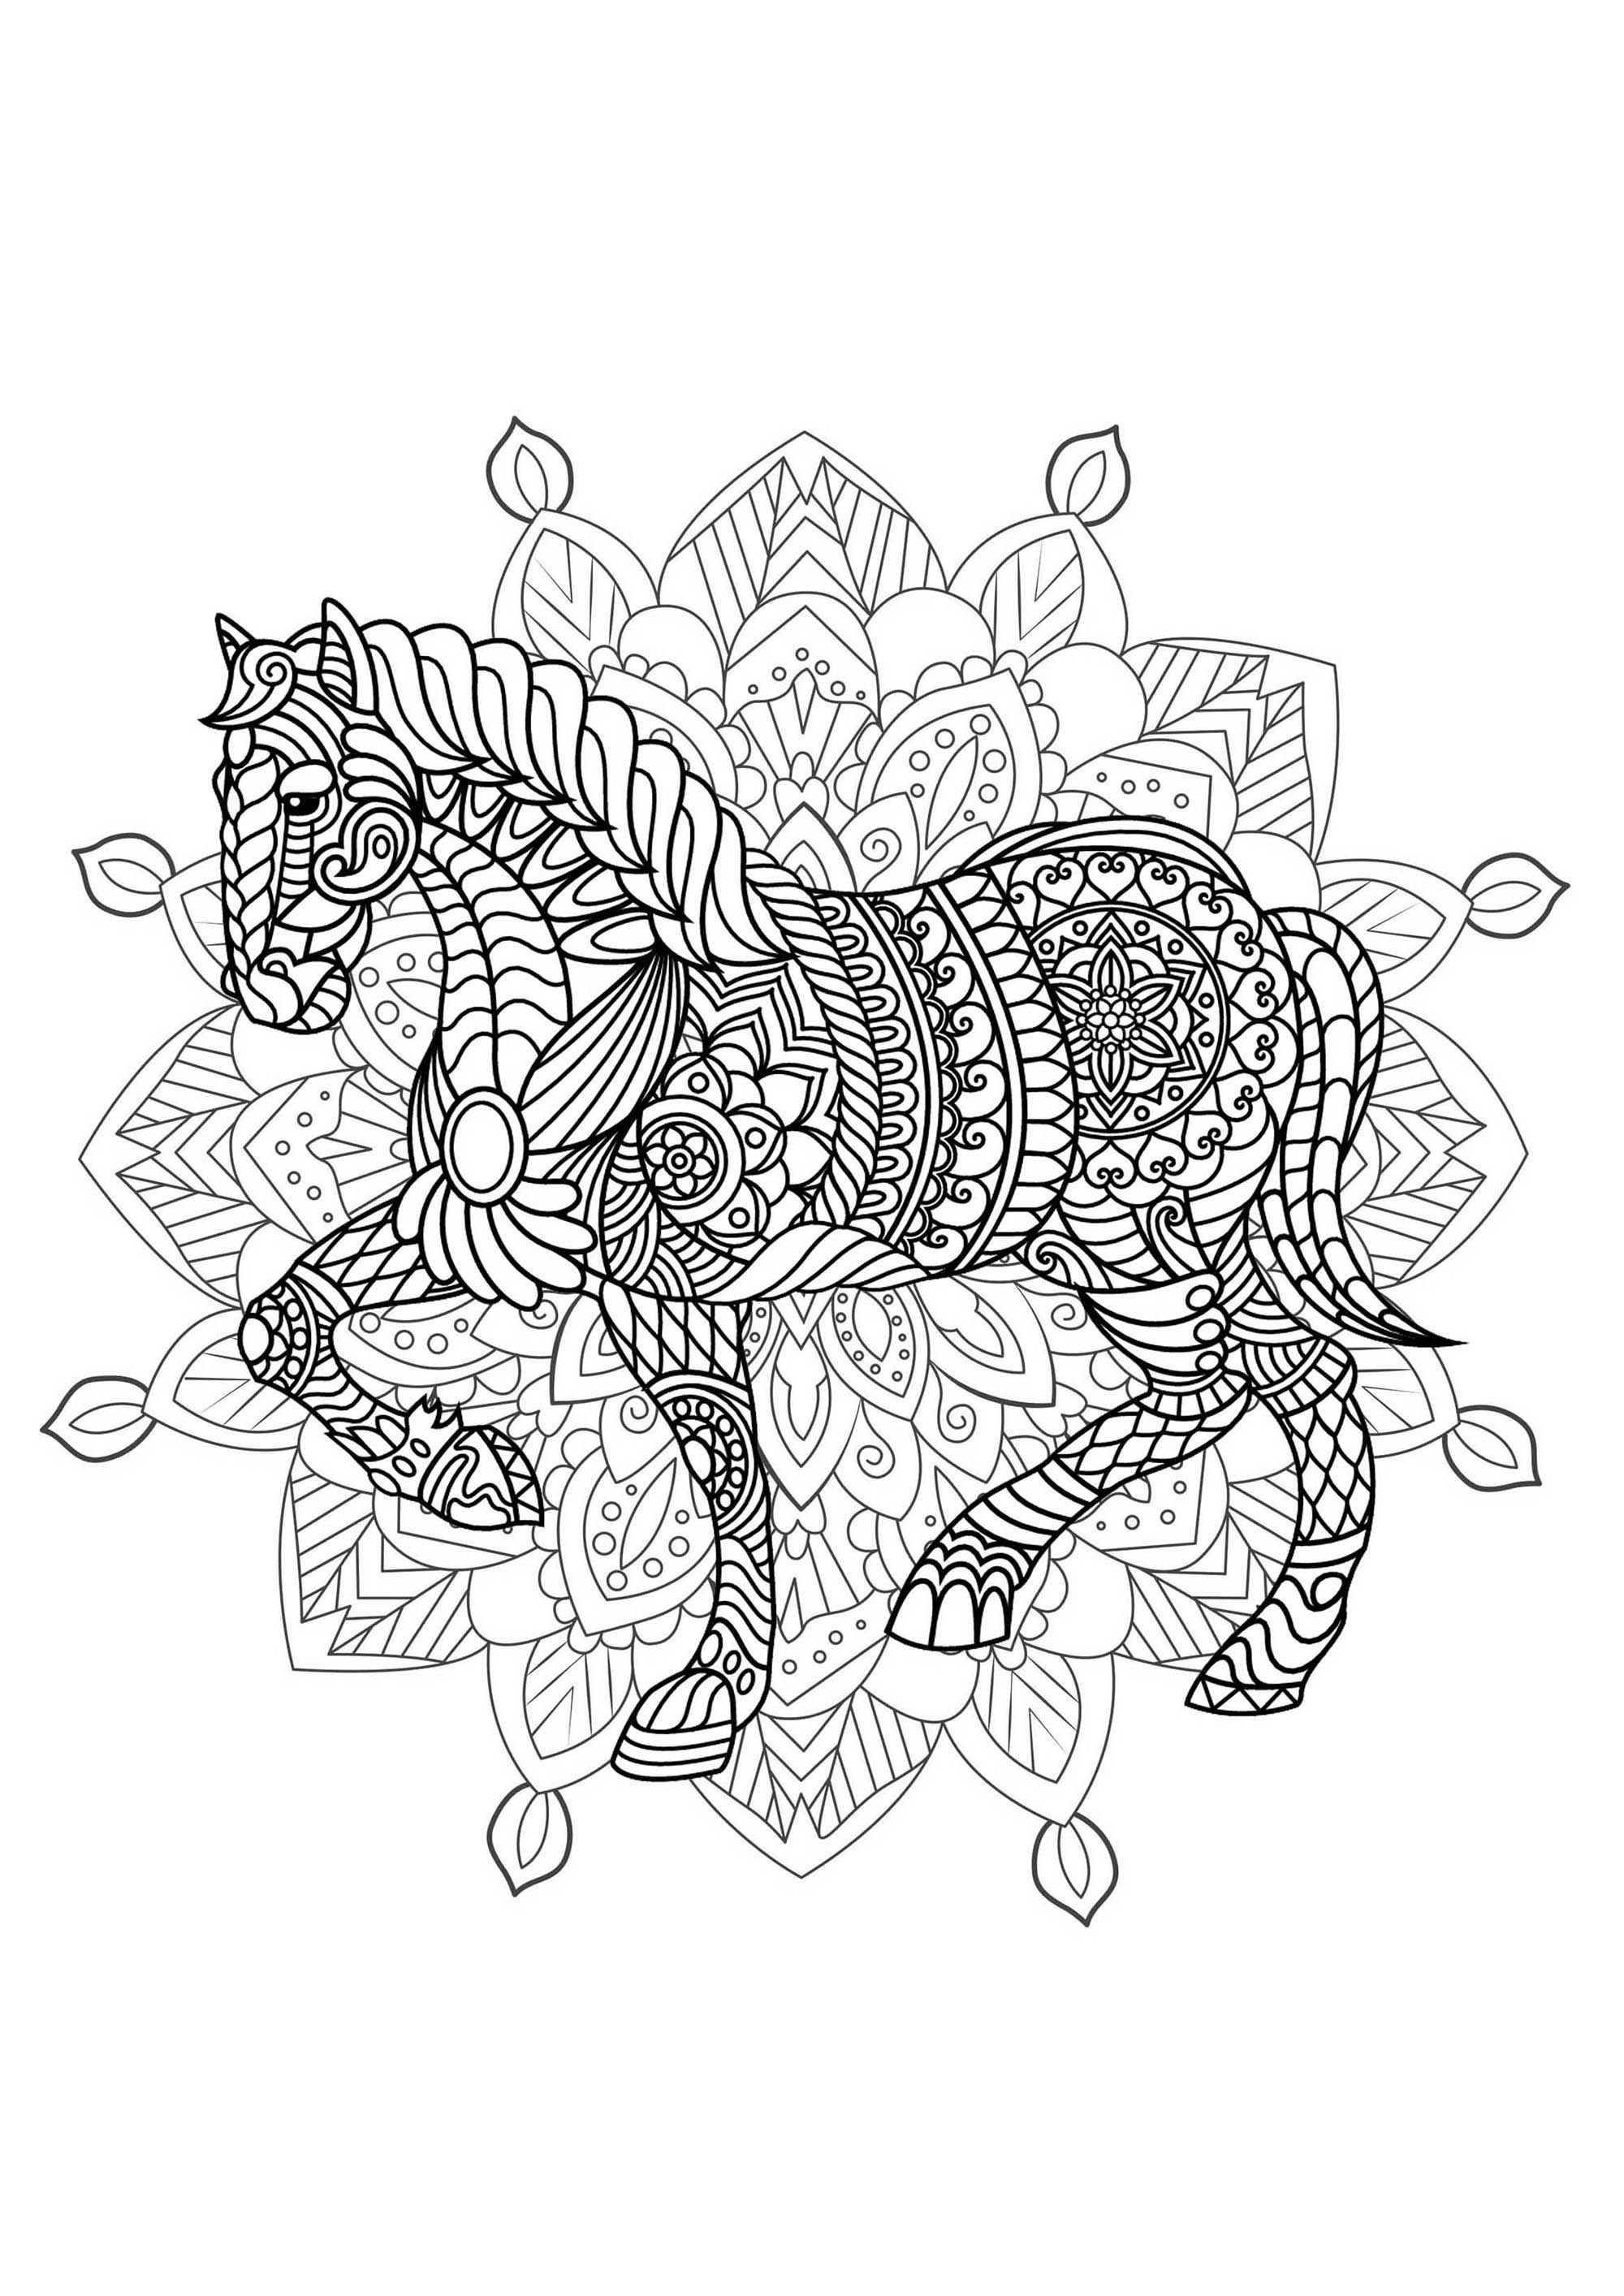 Mandala with elegant Horse and plex patterns M alas